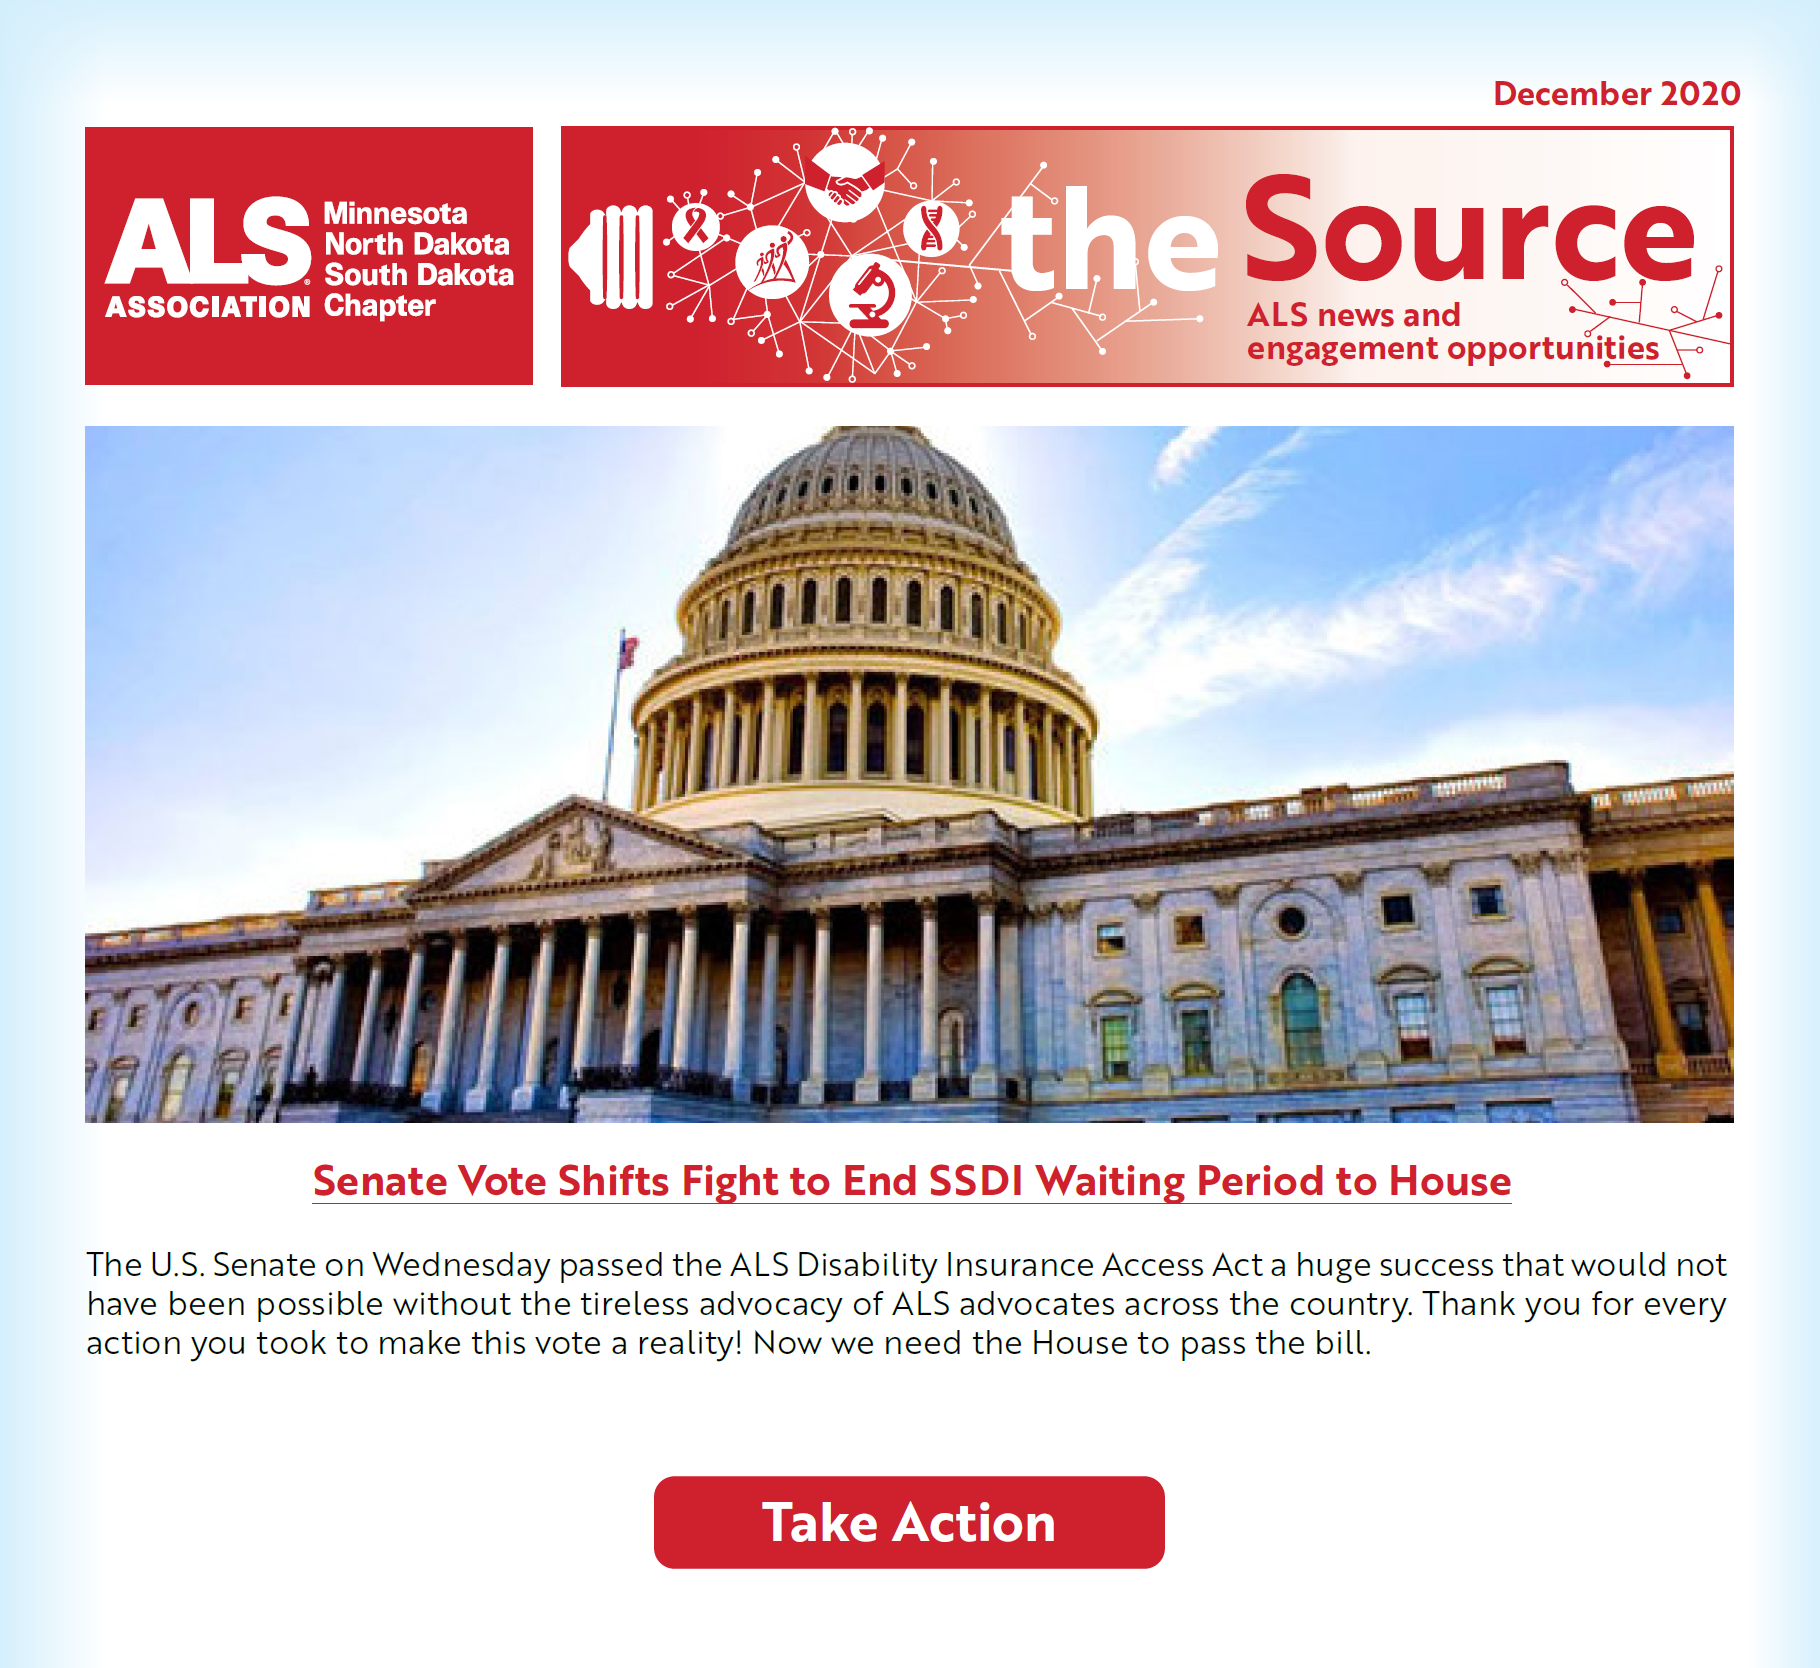 the Source vol 62 (December 2020) - Snapshot.png